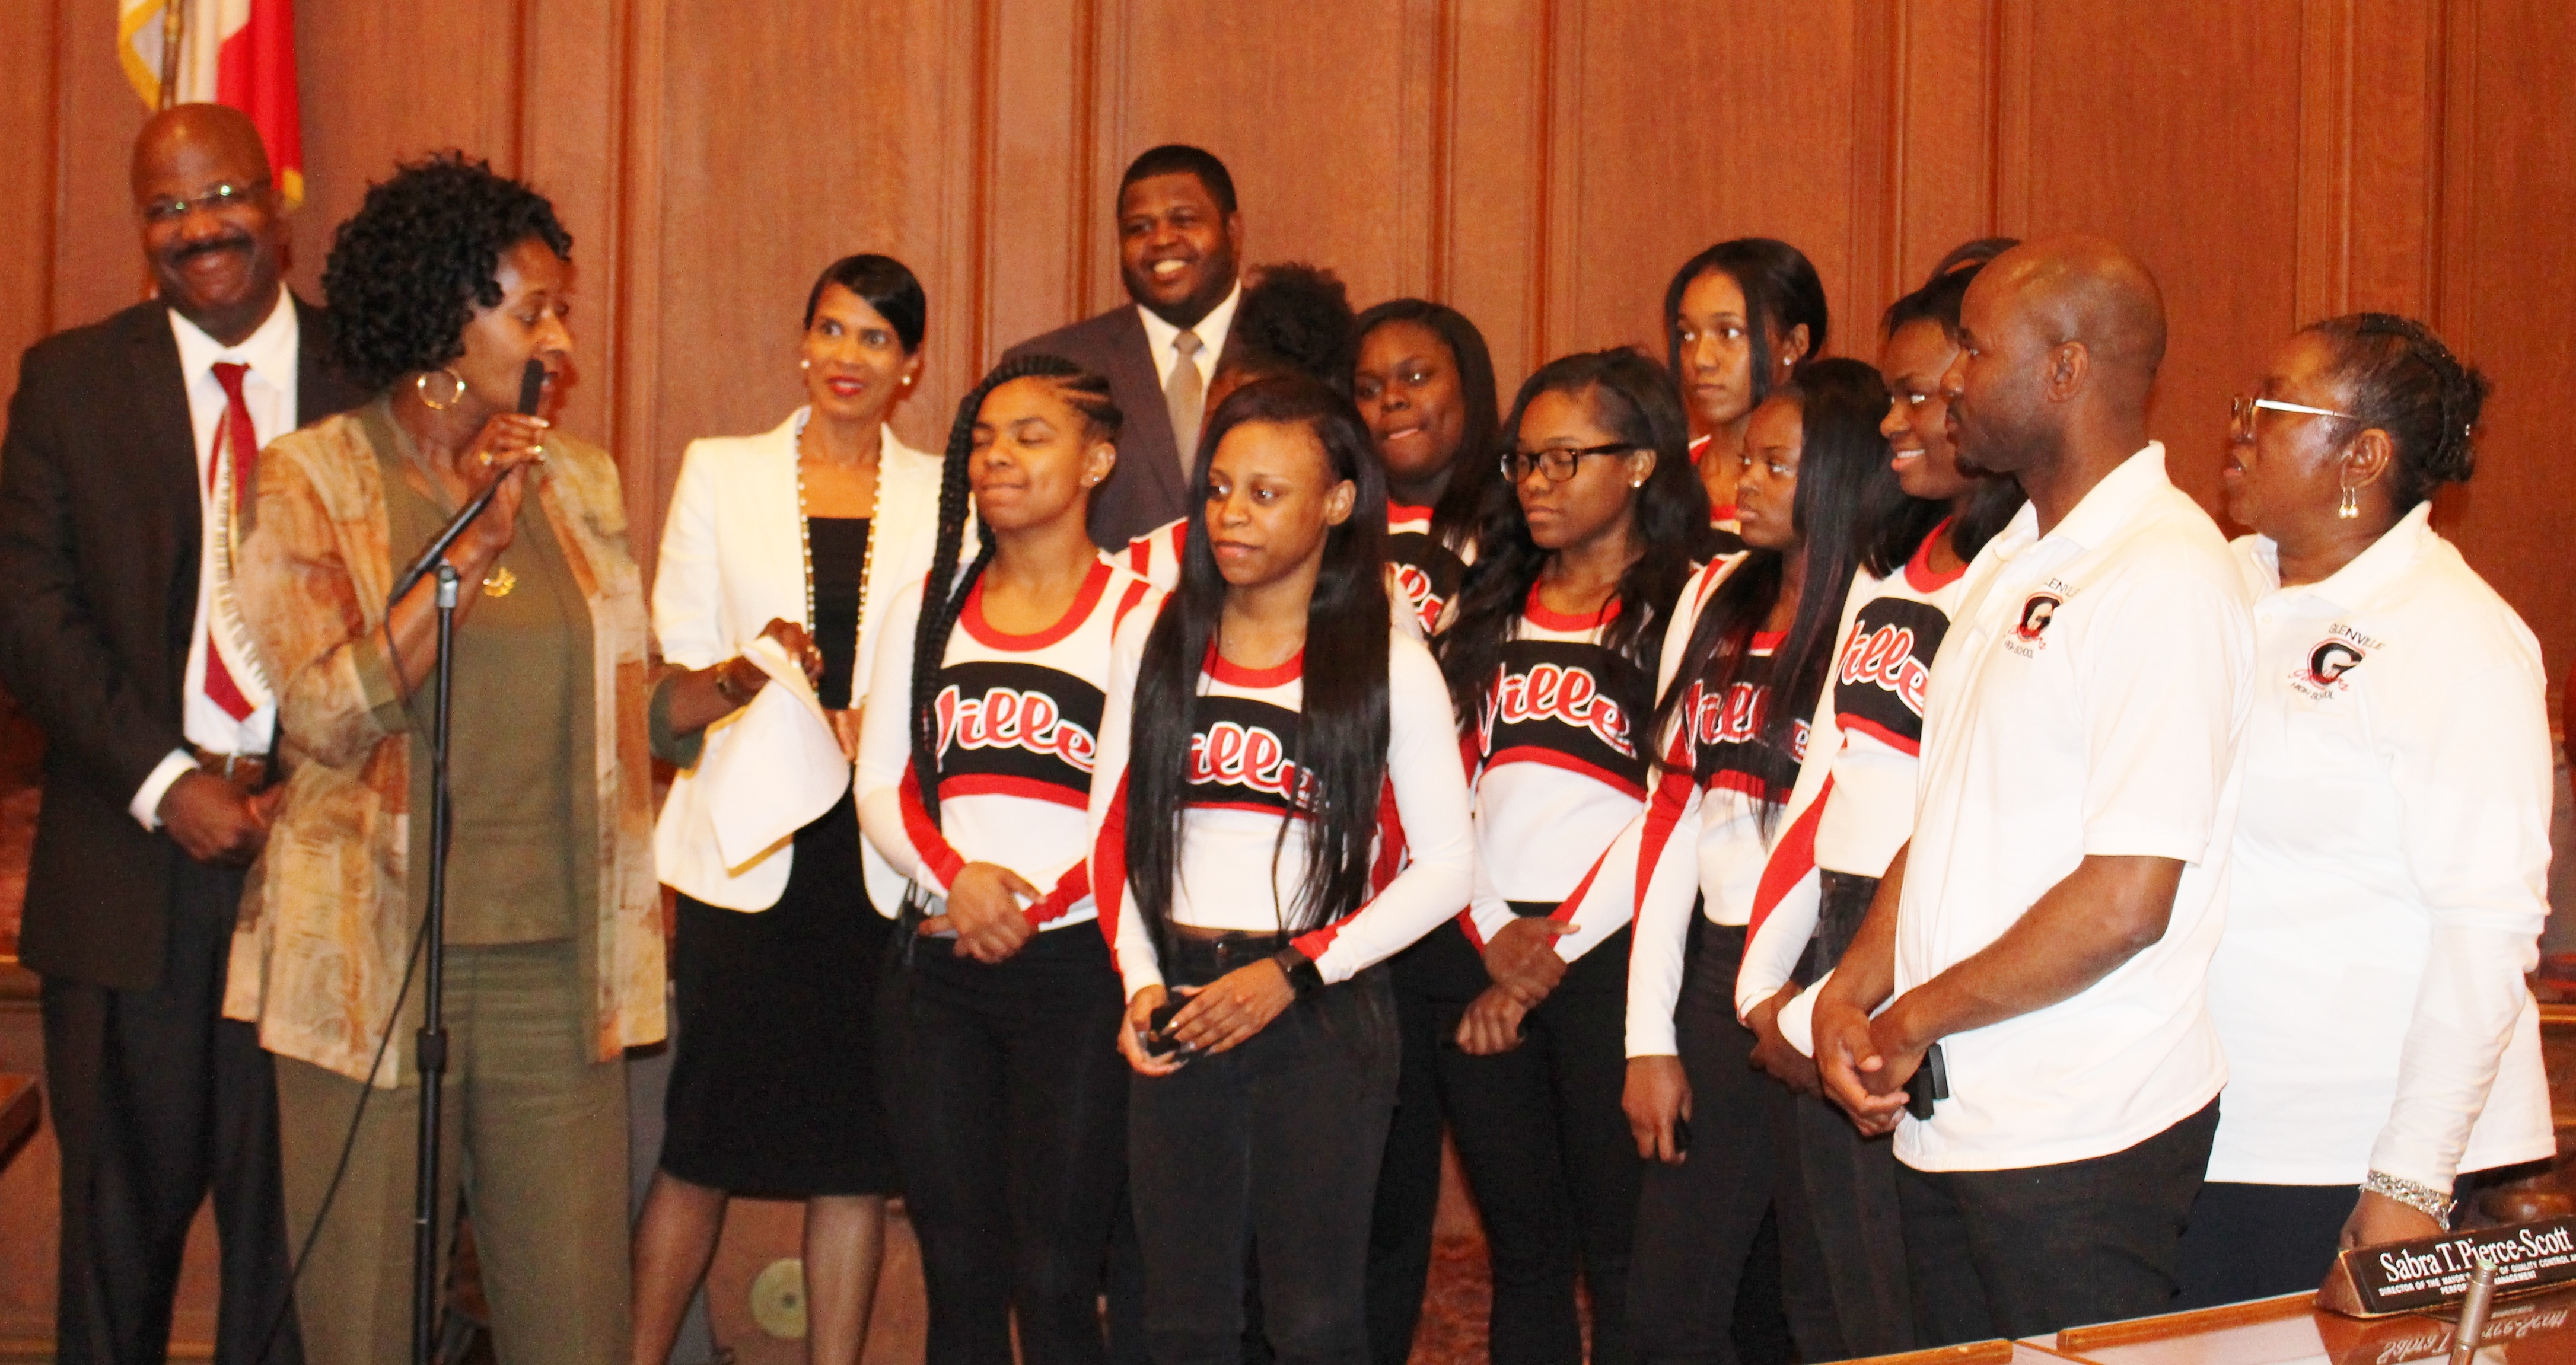 Glenville Cheerleaders Are Honored By City Council and Celebrate